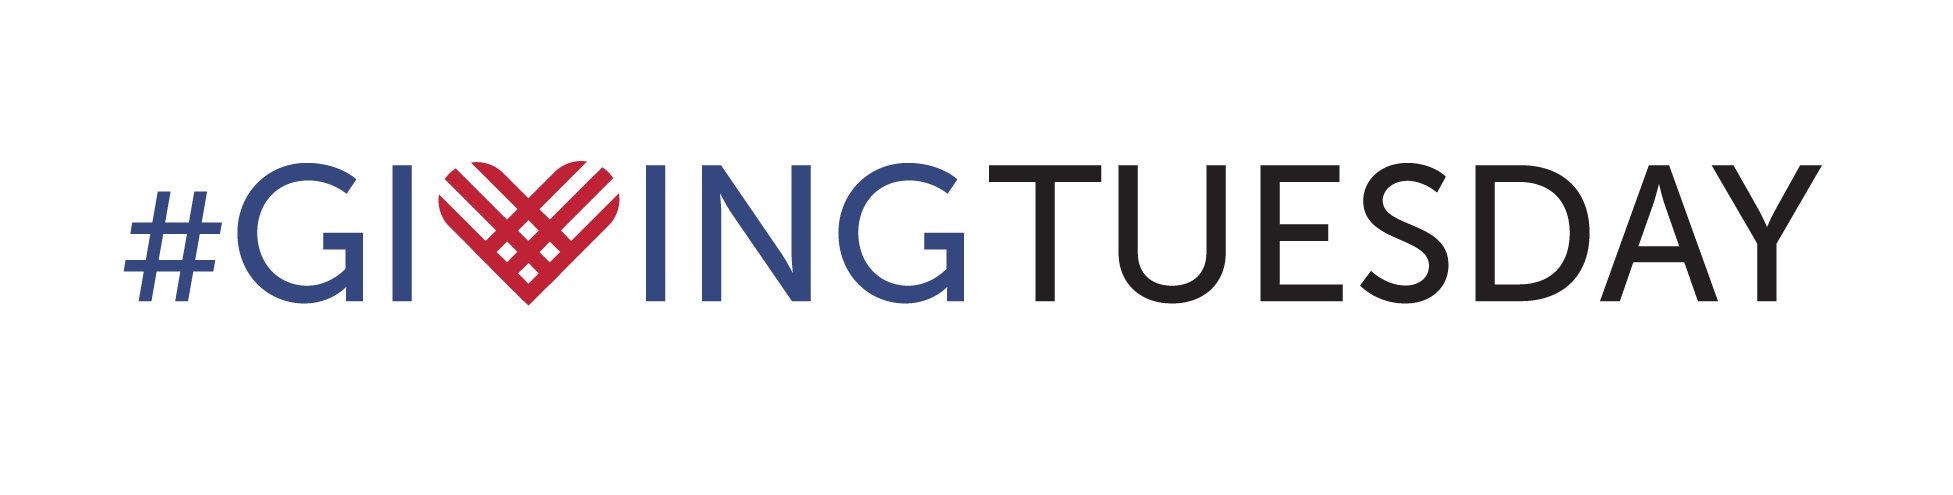 Giving Tuesday Logo.jpg